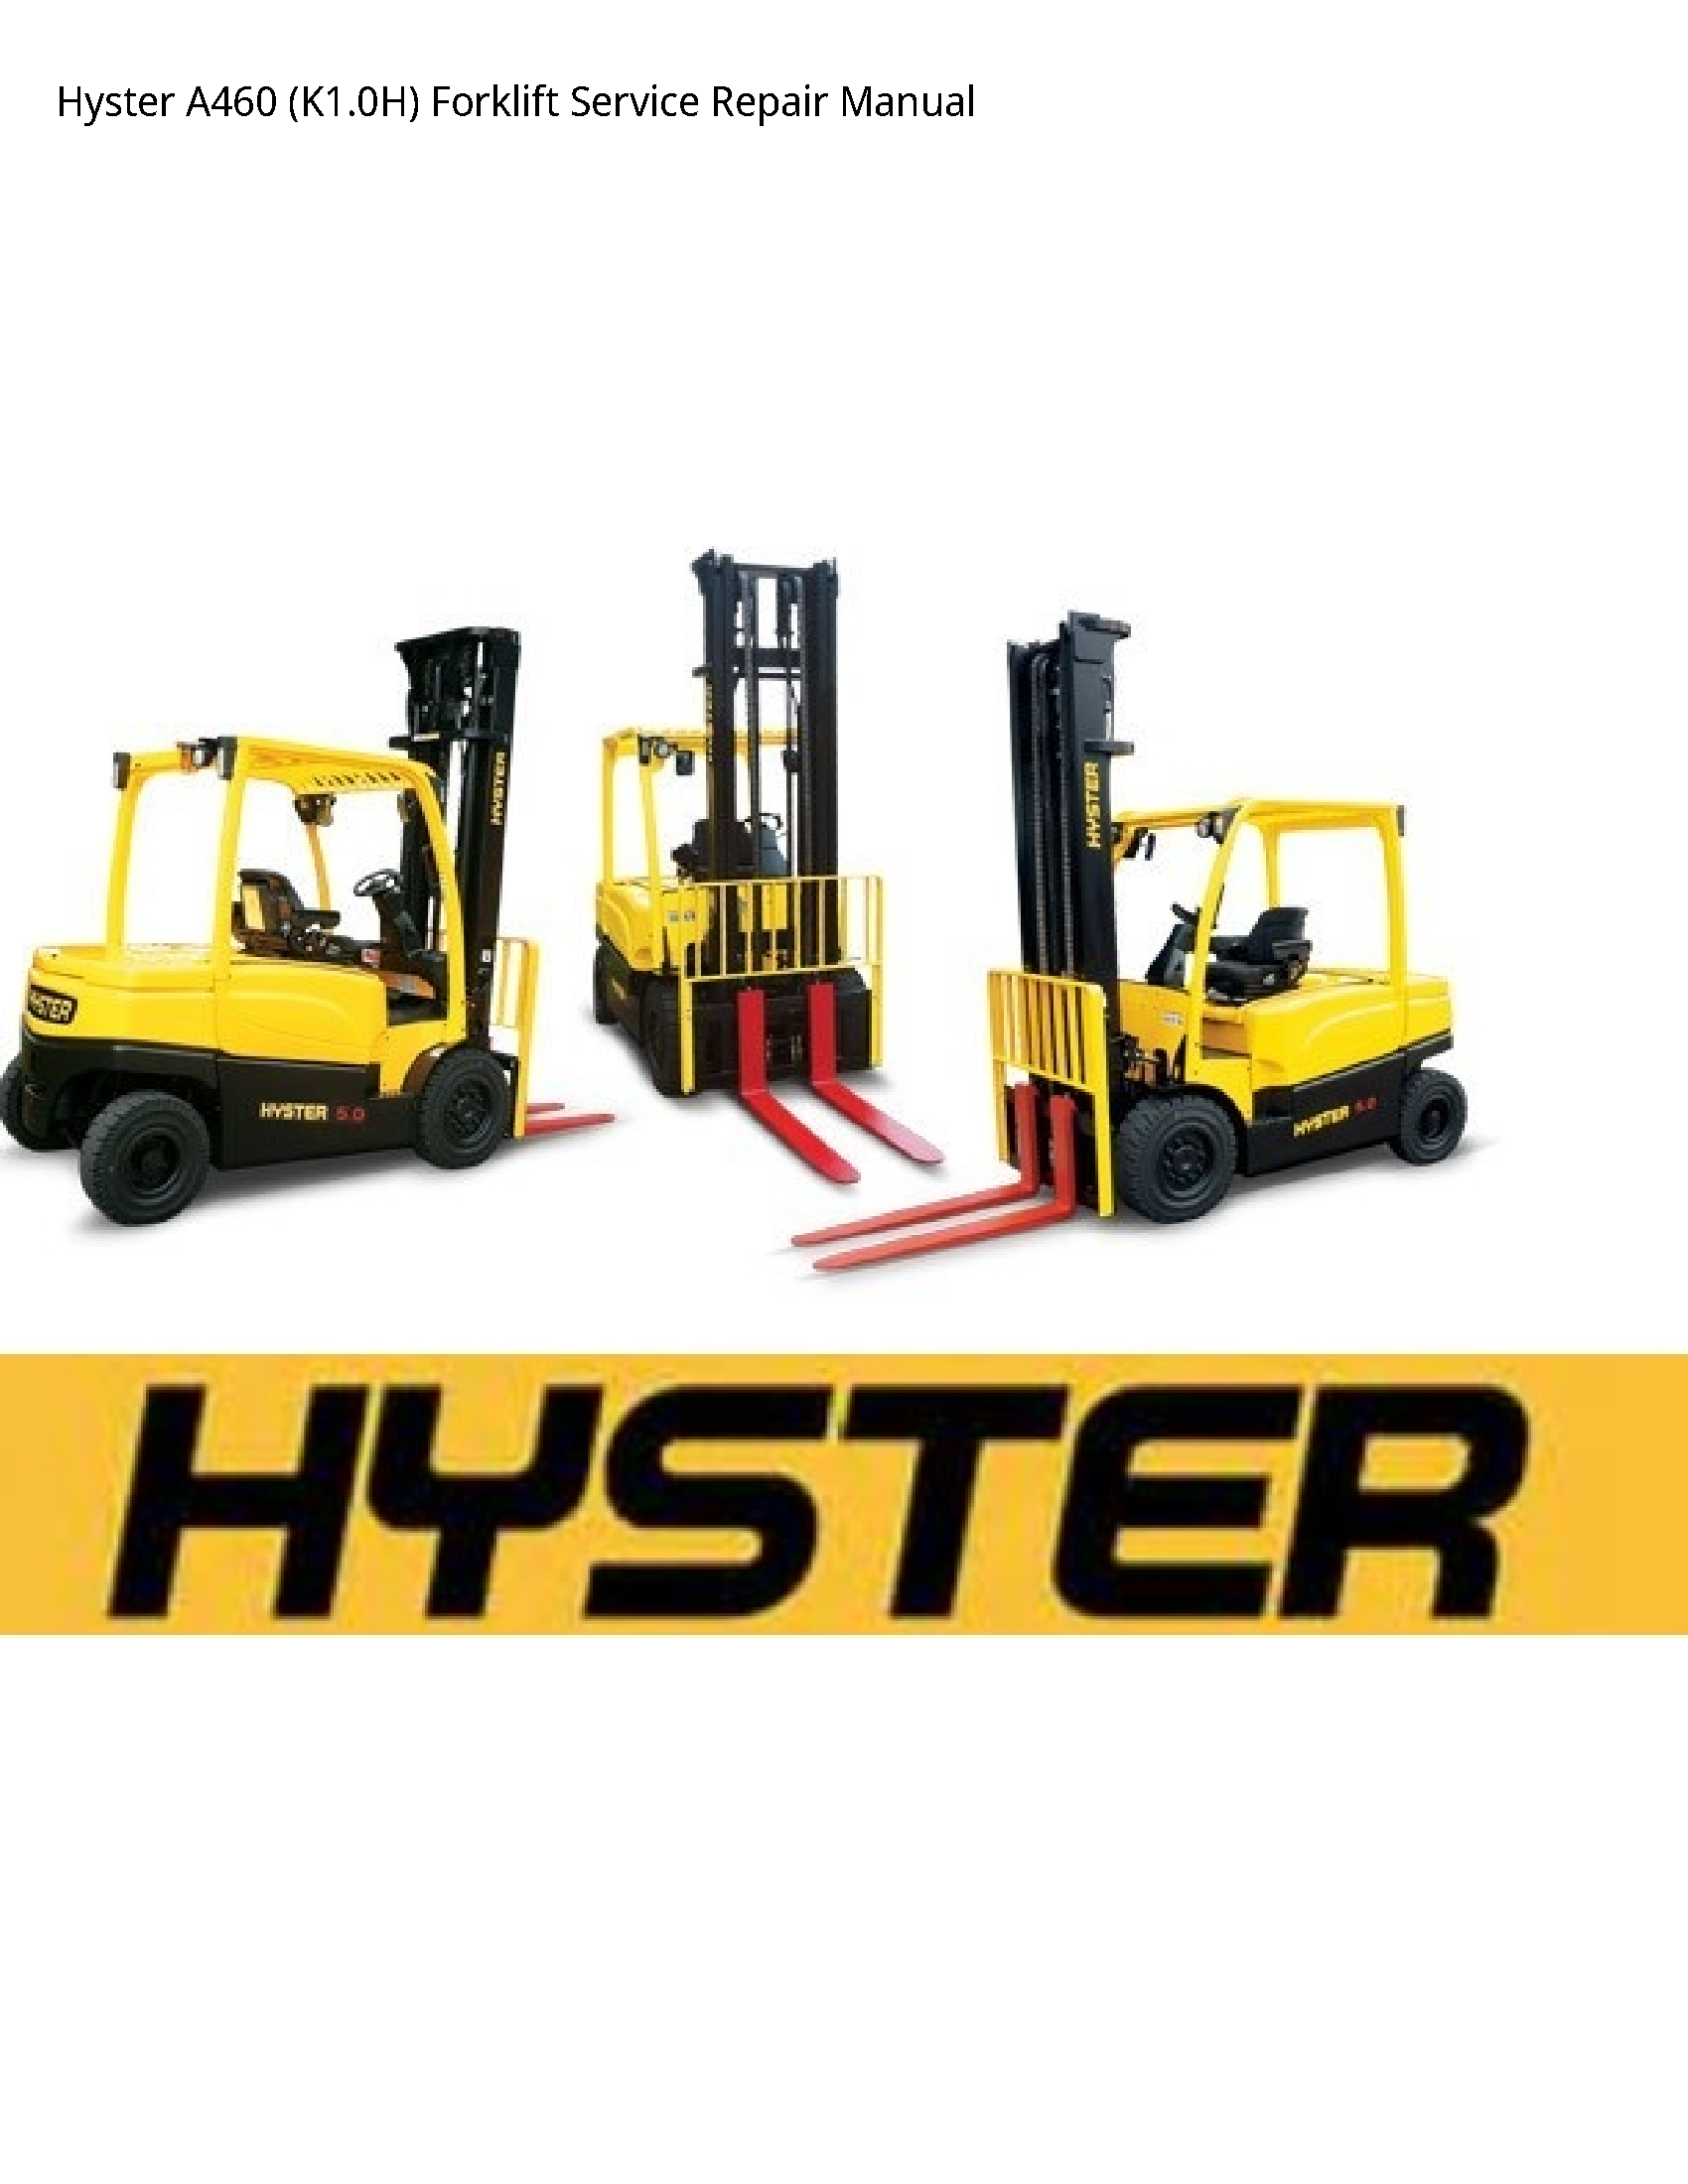 Hyster A460 Forklift manual